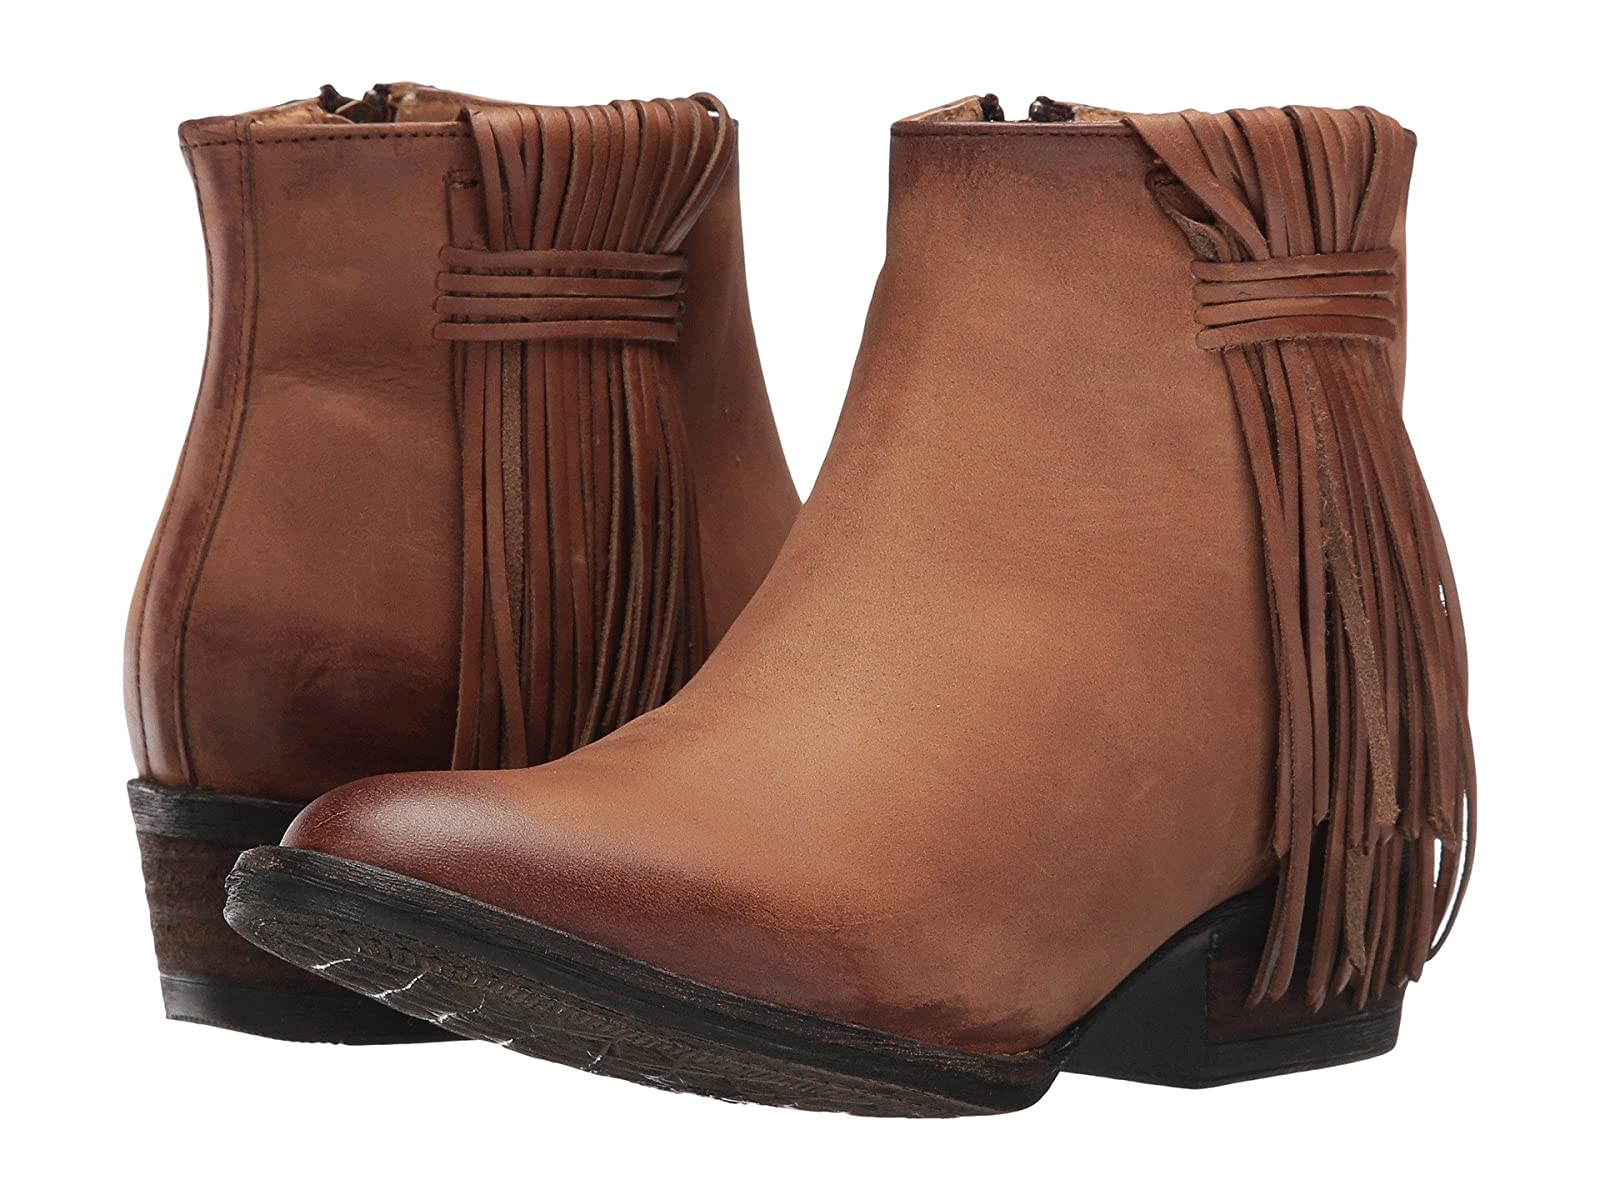 Corral Boots Q0007Affordable and distinctive shoes